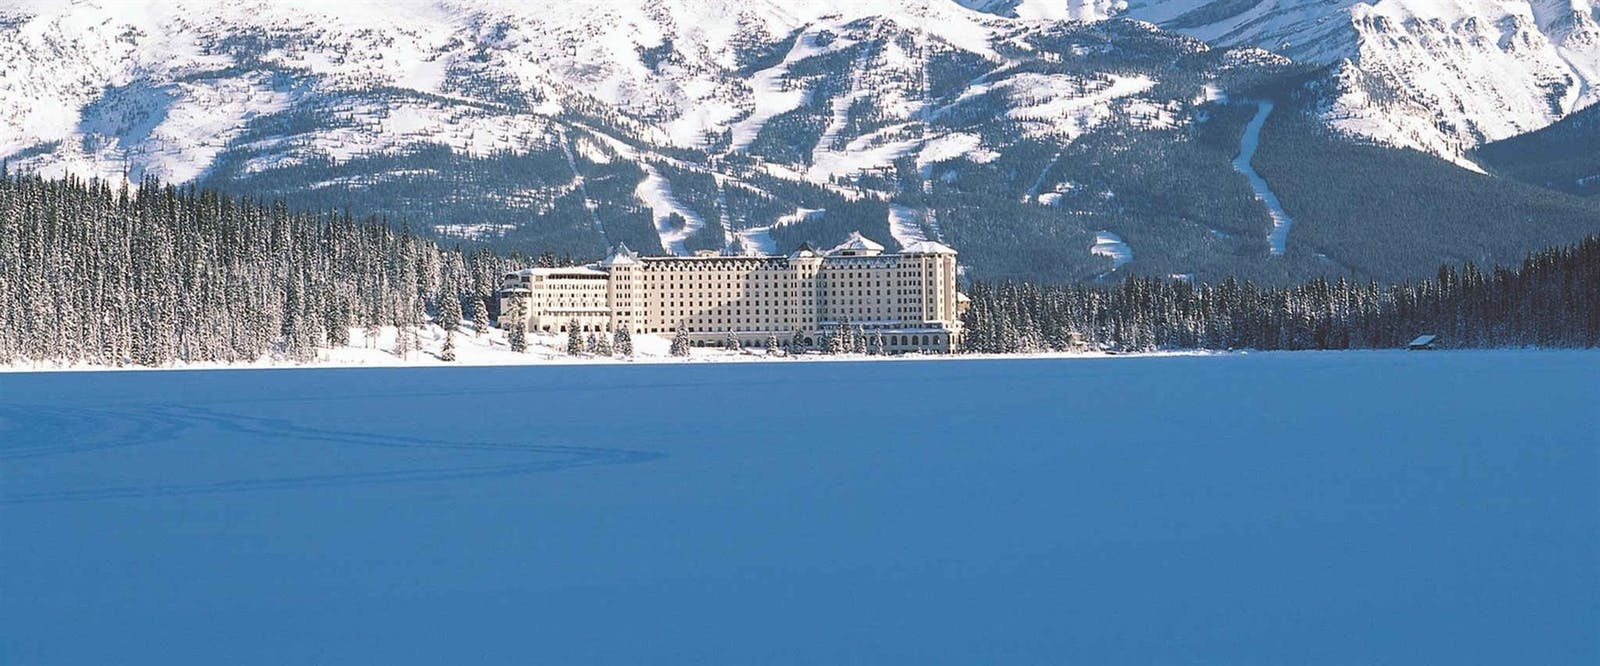 Exterior of Fairmont Chateau Lake Louise, Alberta